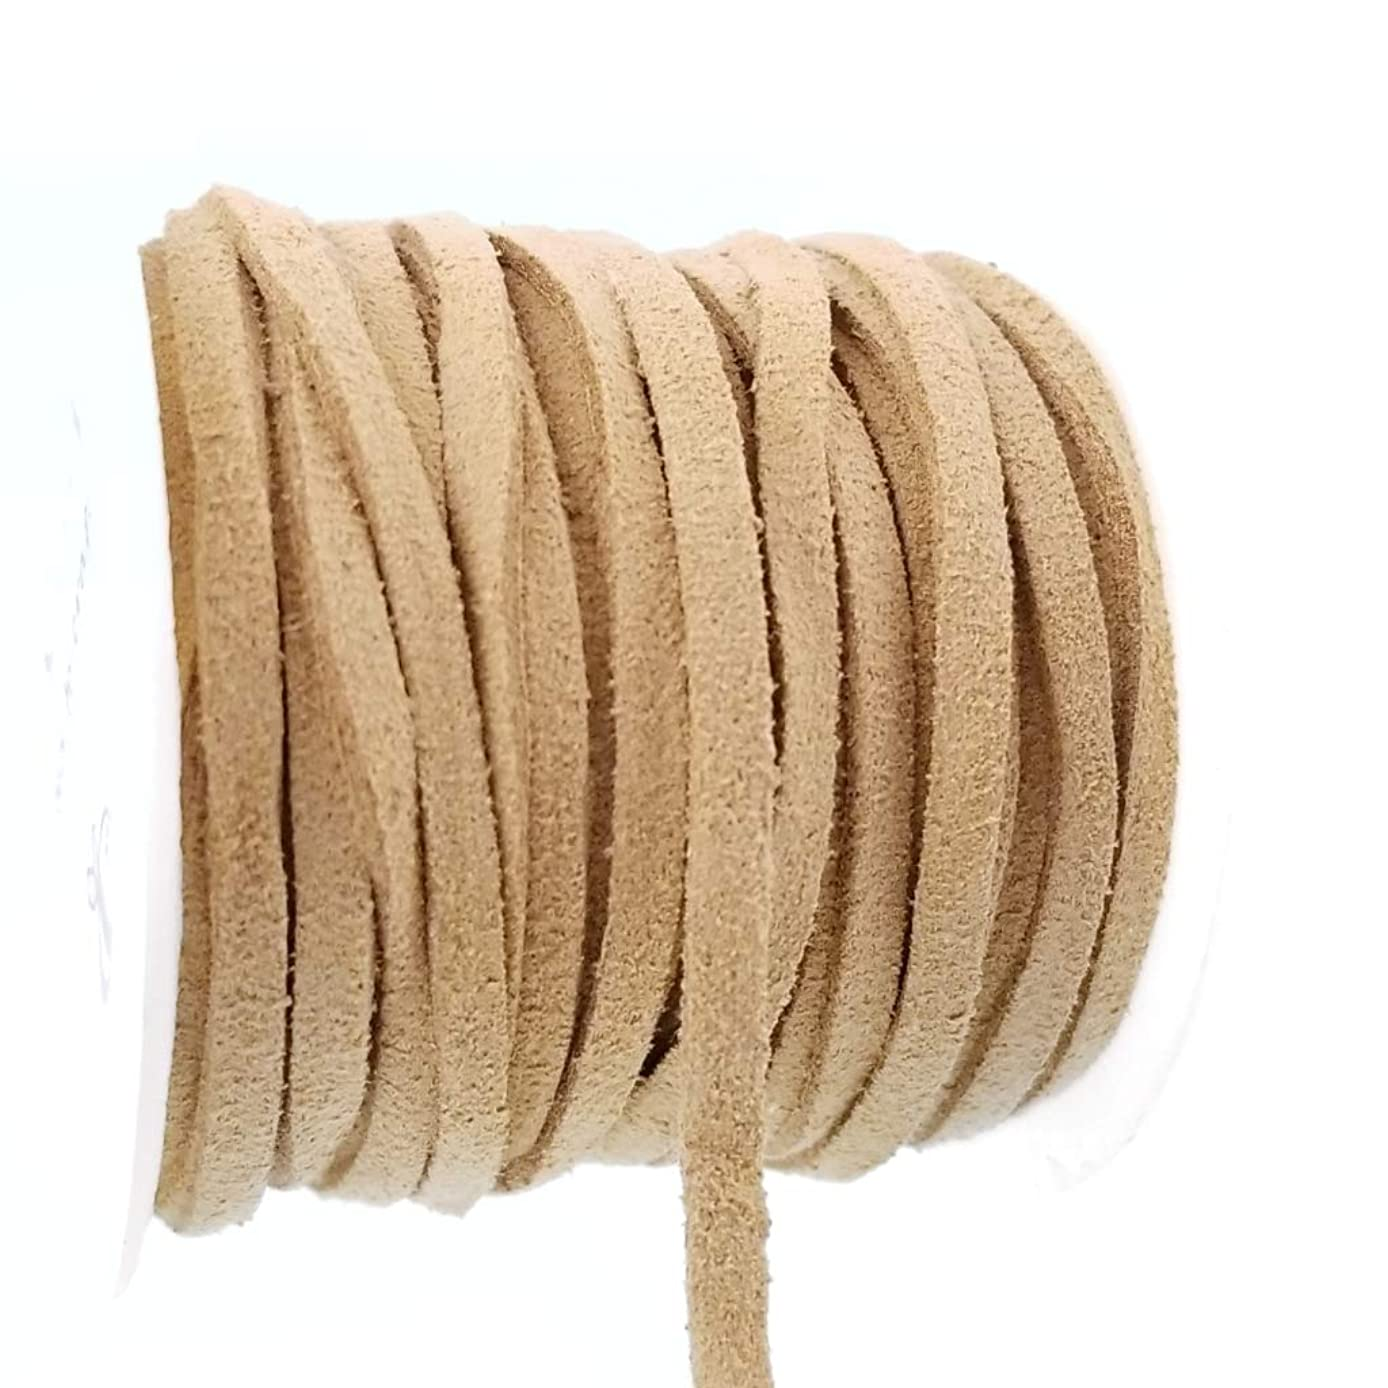 Tan Light Brown Flat Faux Suede Fabric Cord Vegan Leather Spool for Crafts, Jewelry Making (3mm)